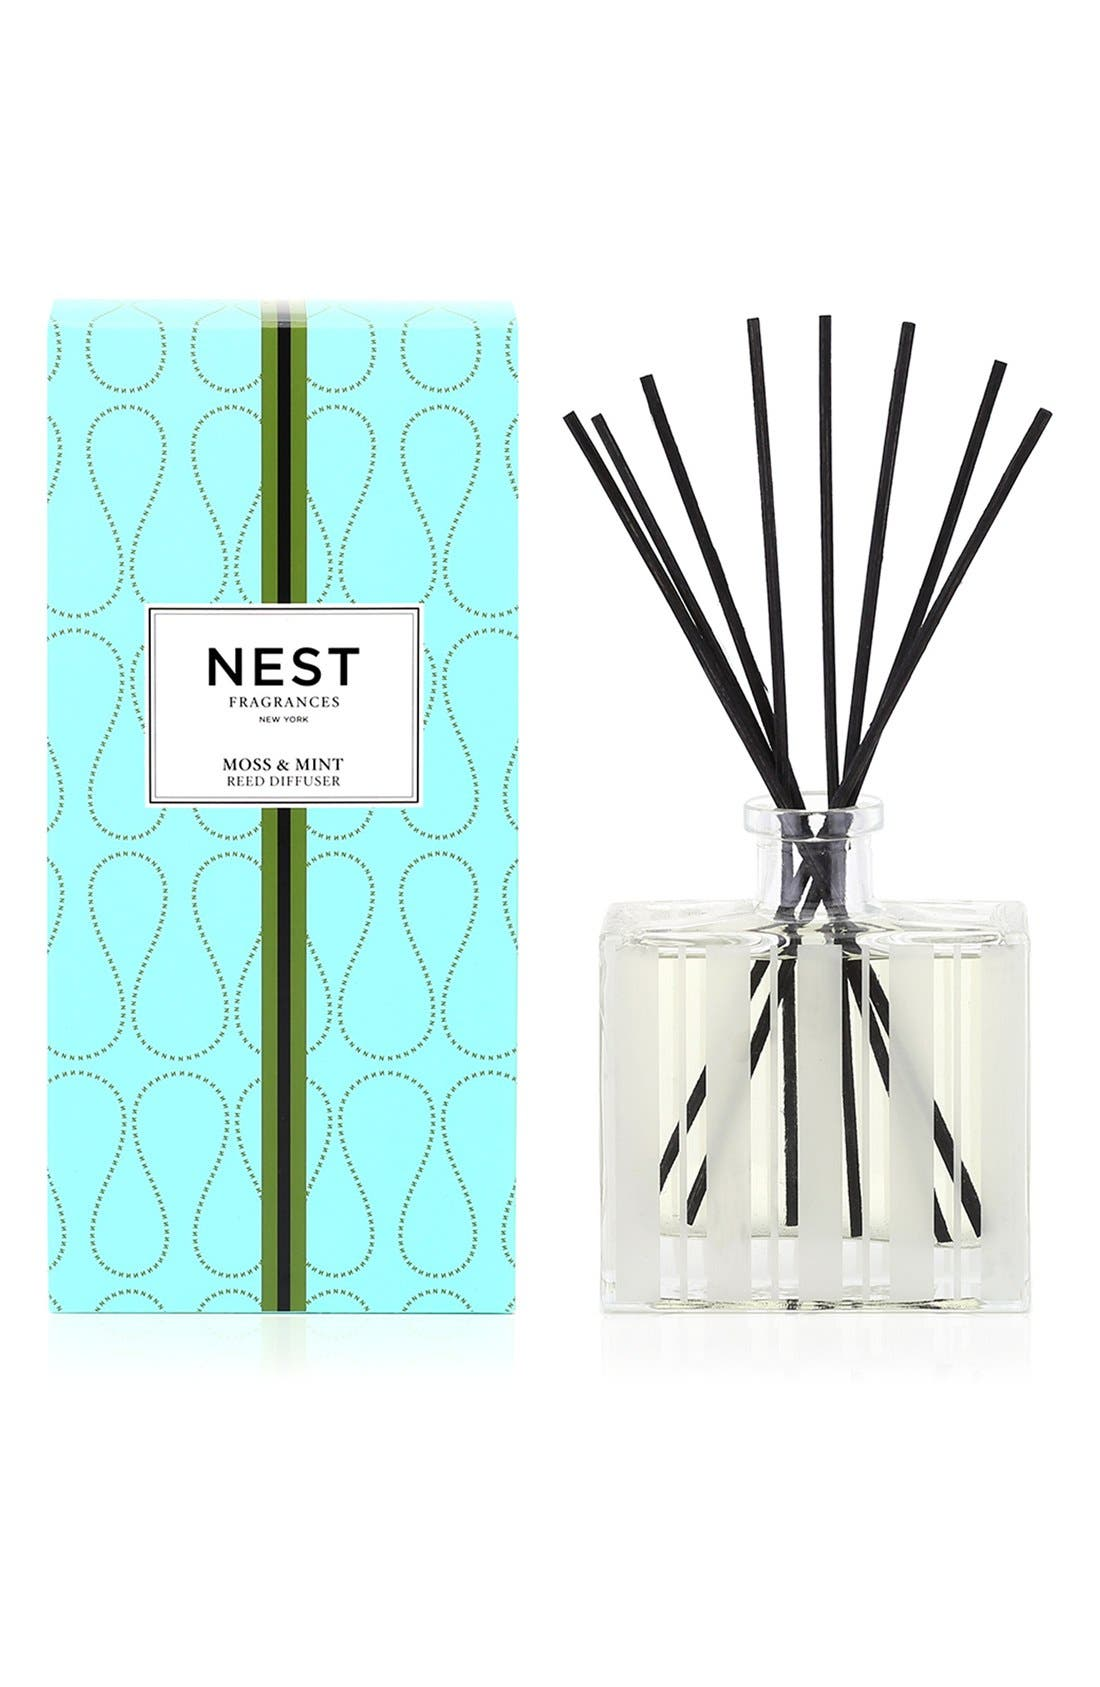 NEST Fragrances 'Moss & Mint' Reed Diffuser